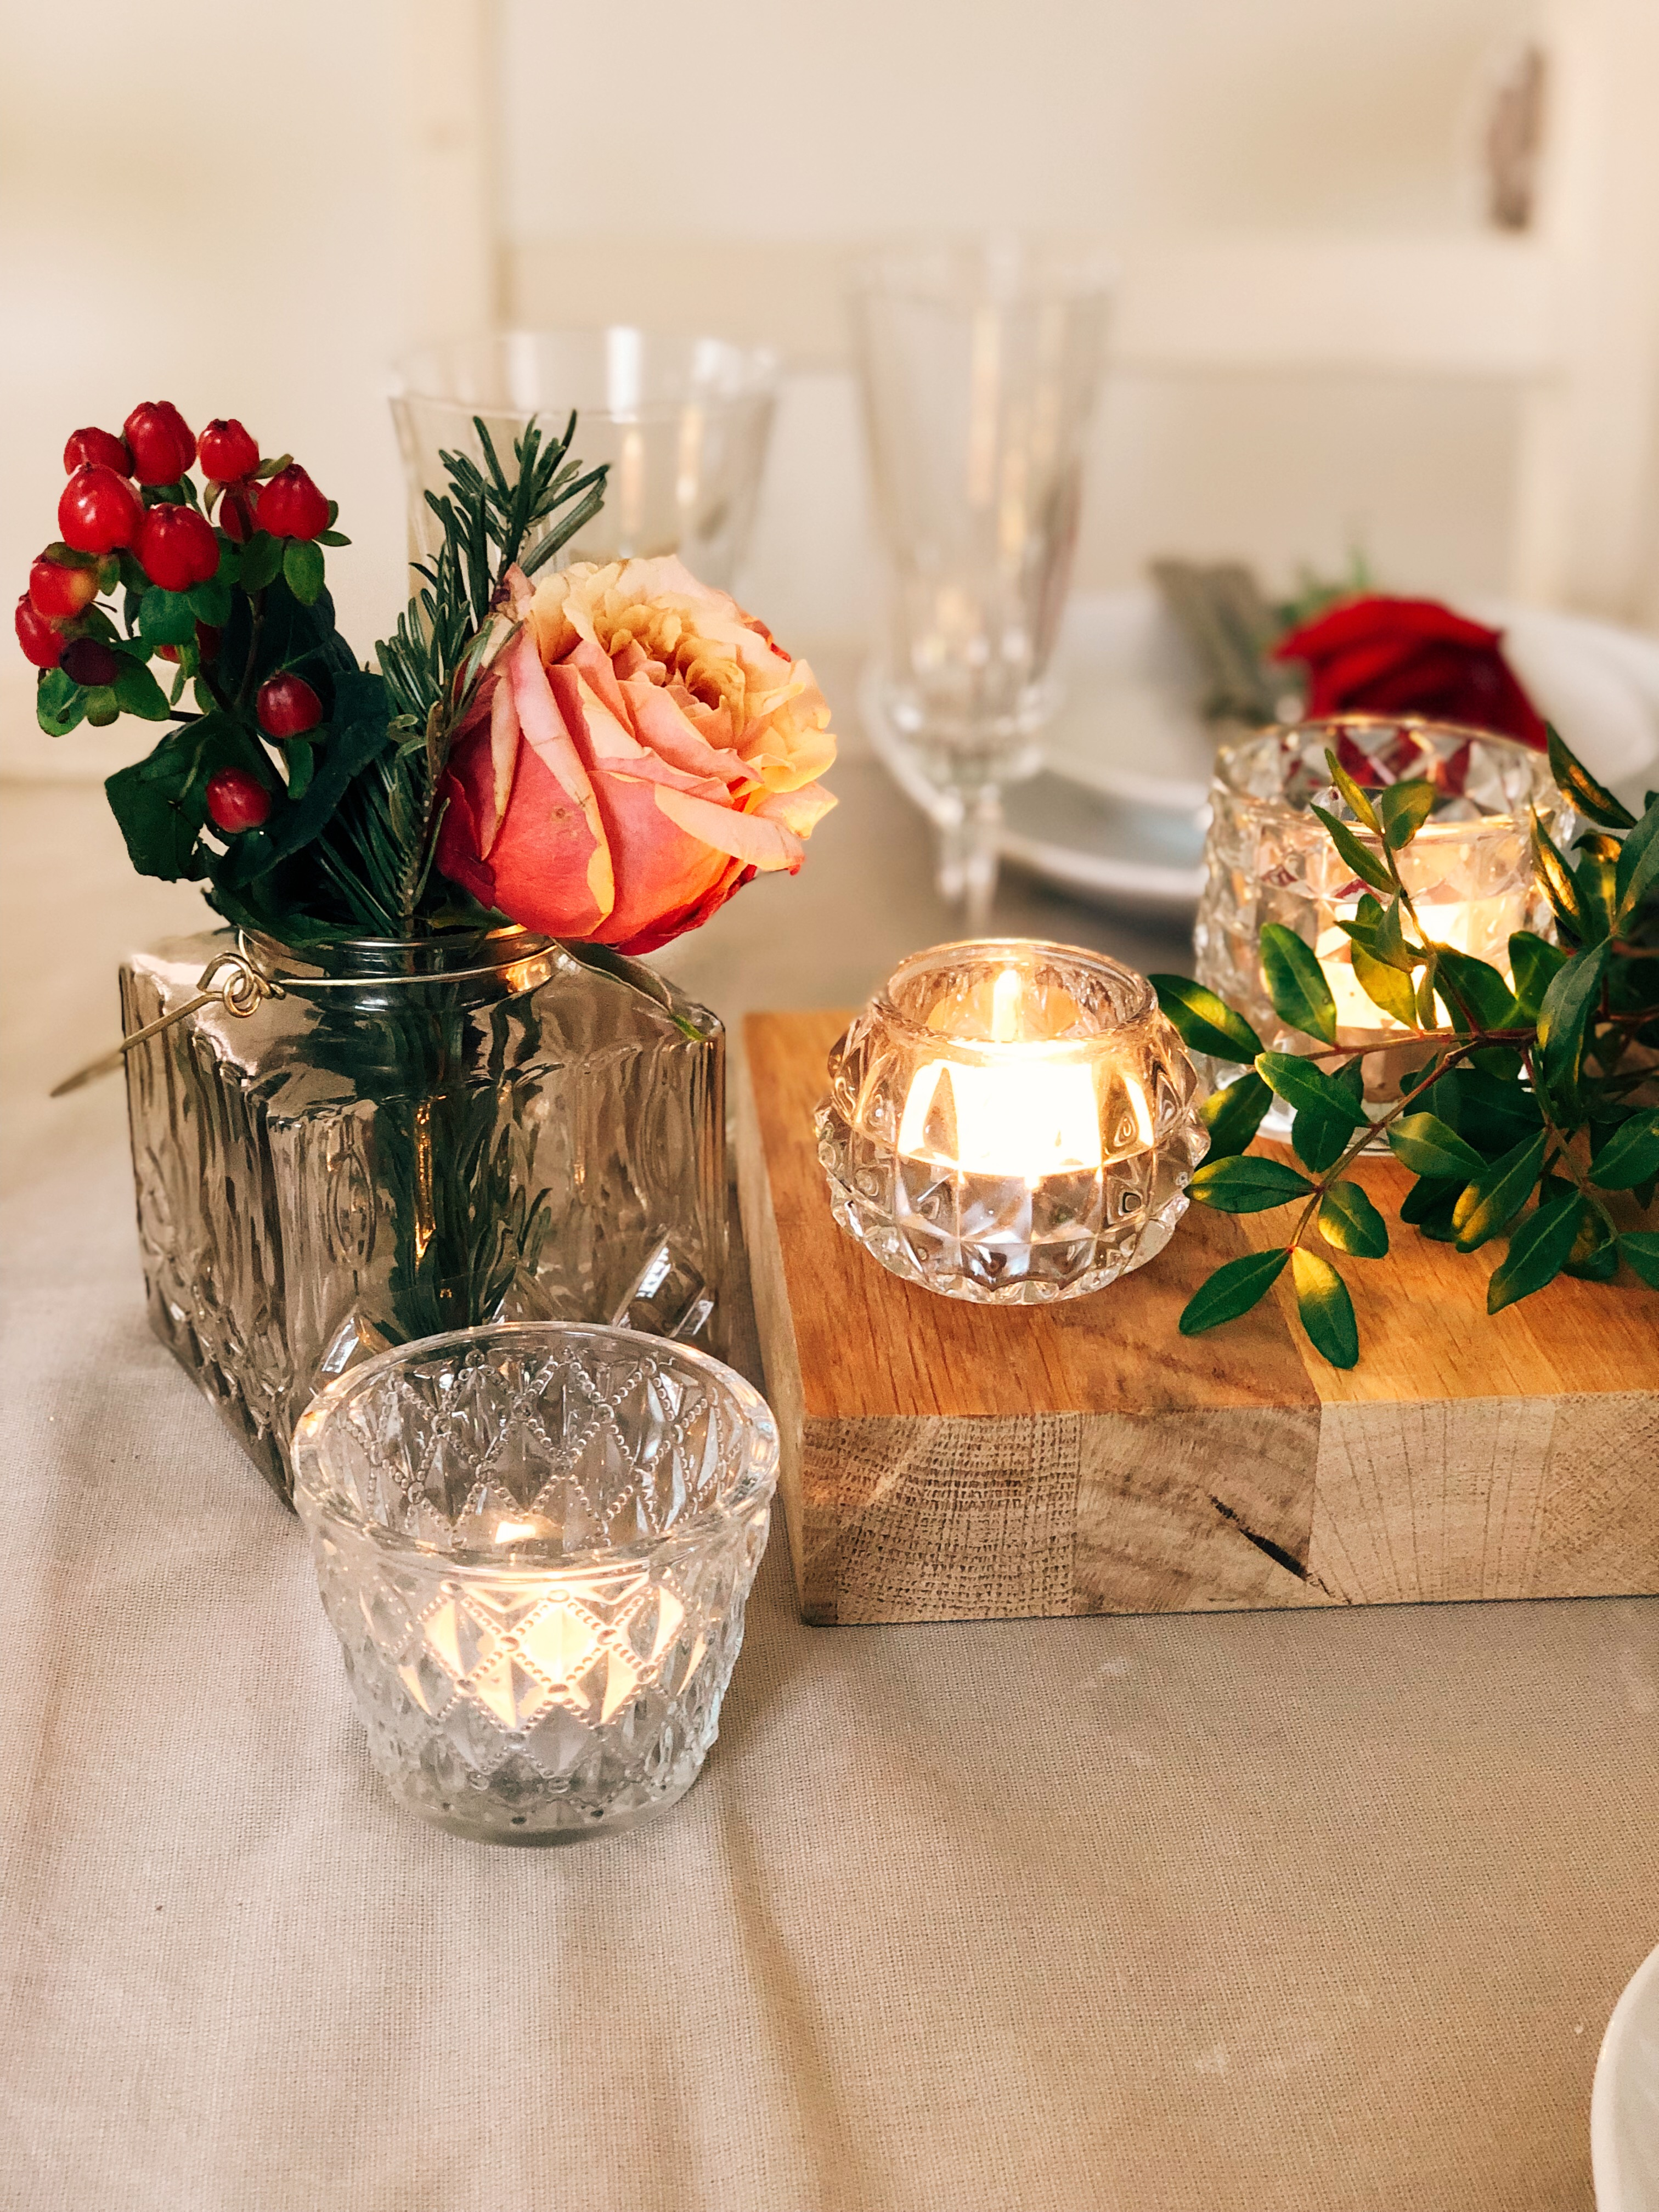 roses in glass vases and candlelight